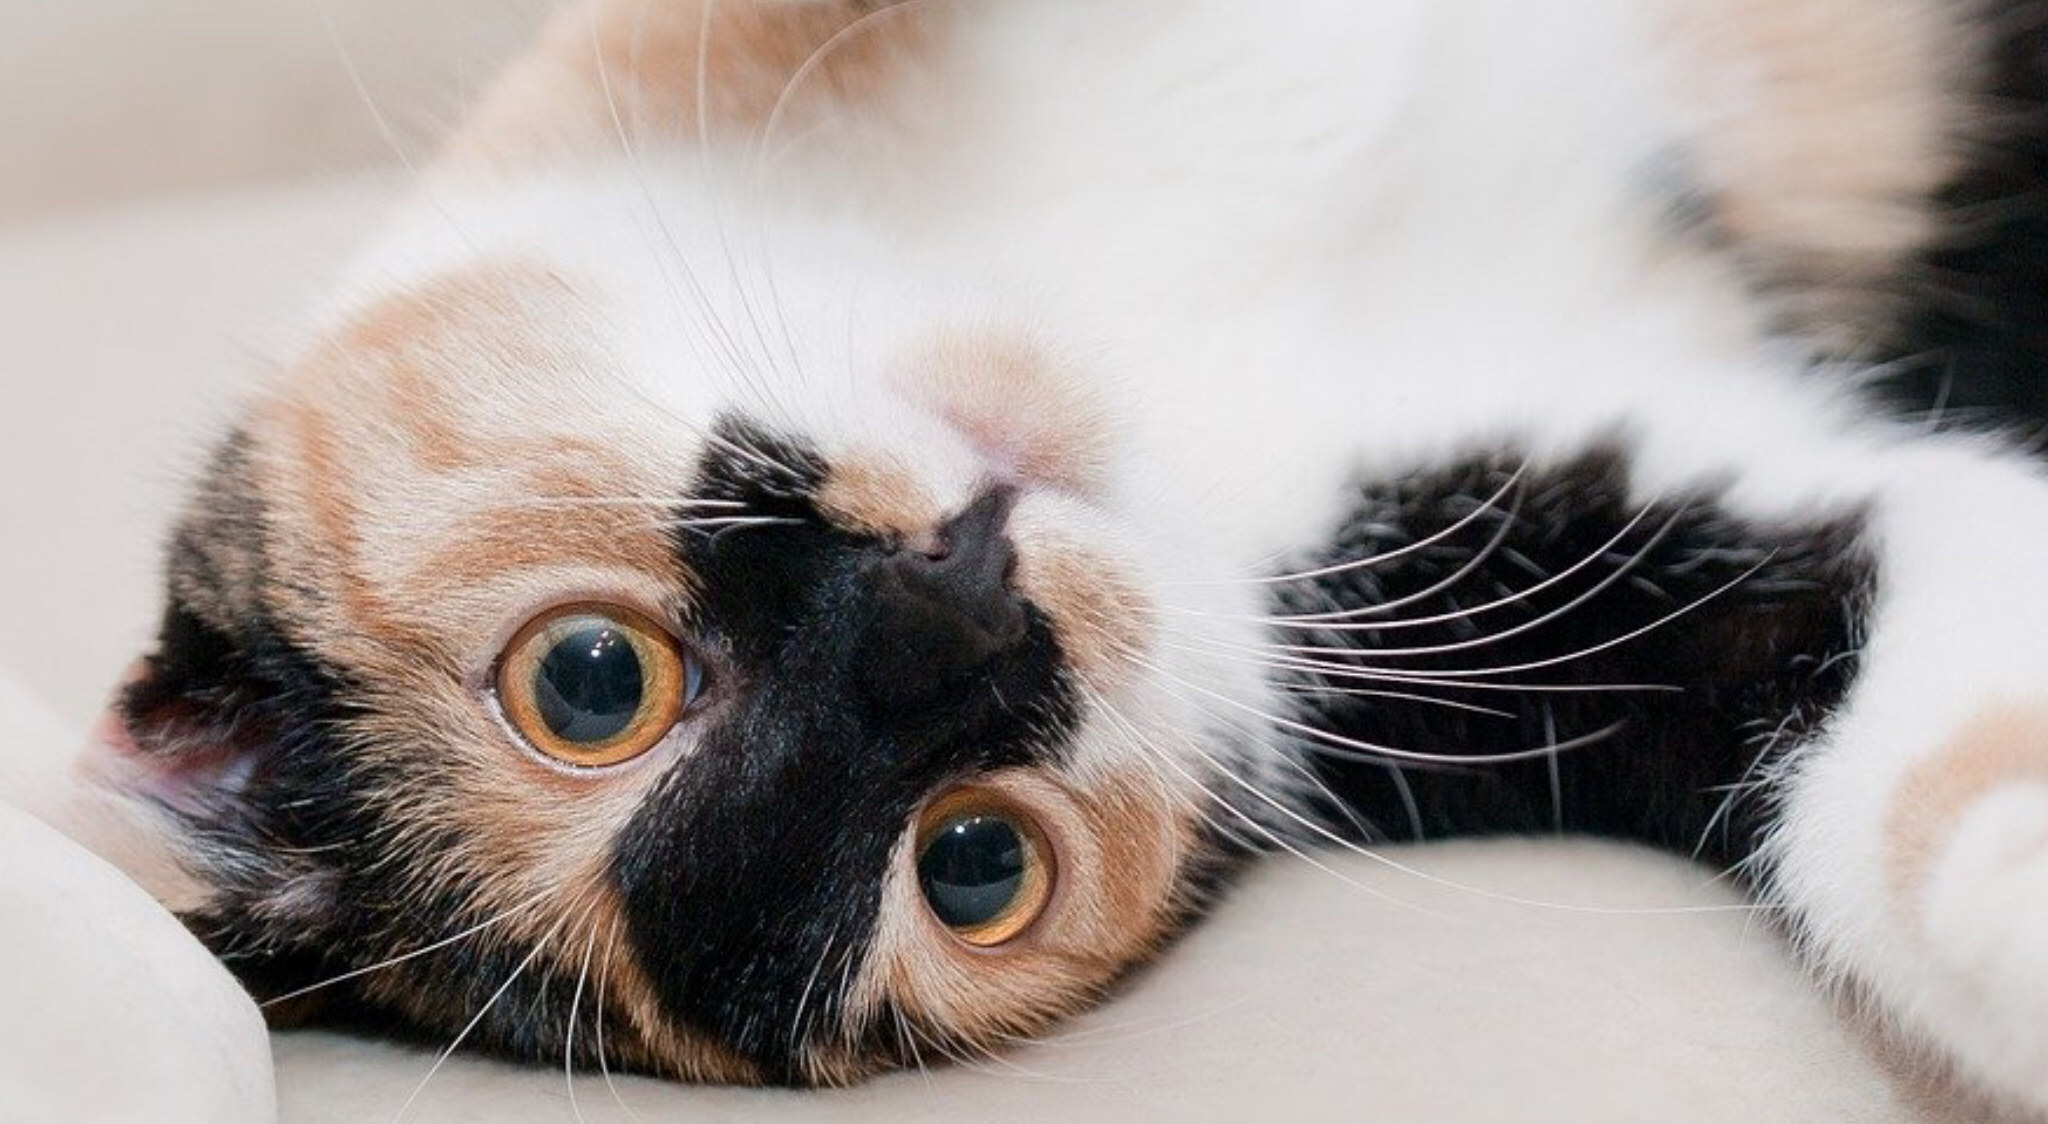 Aeroflot destroyed cats in luggage